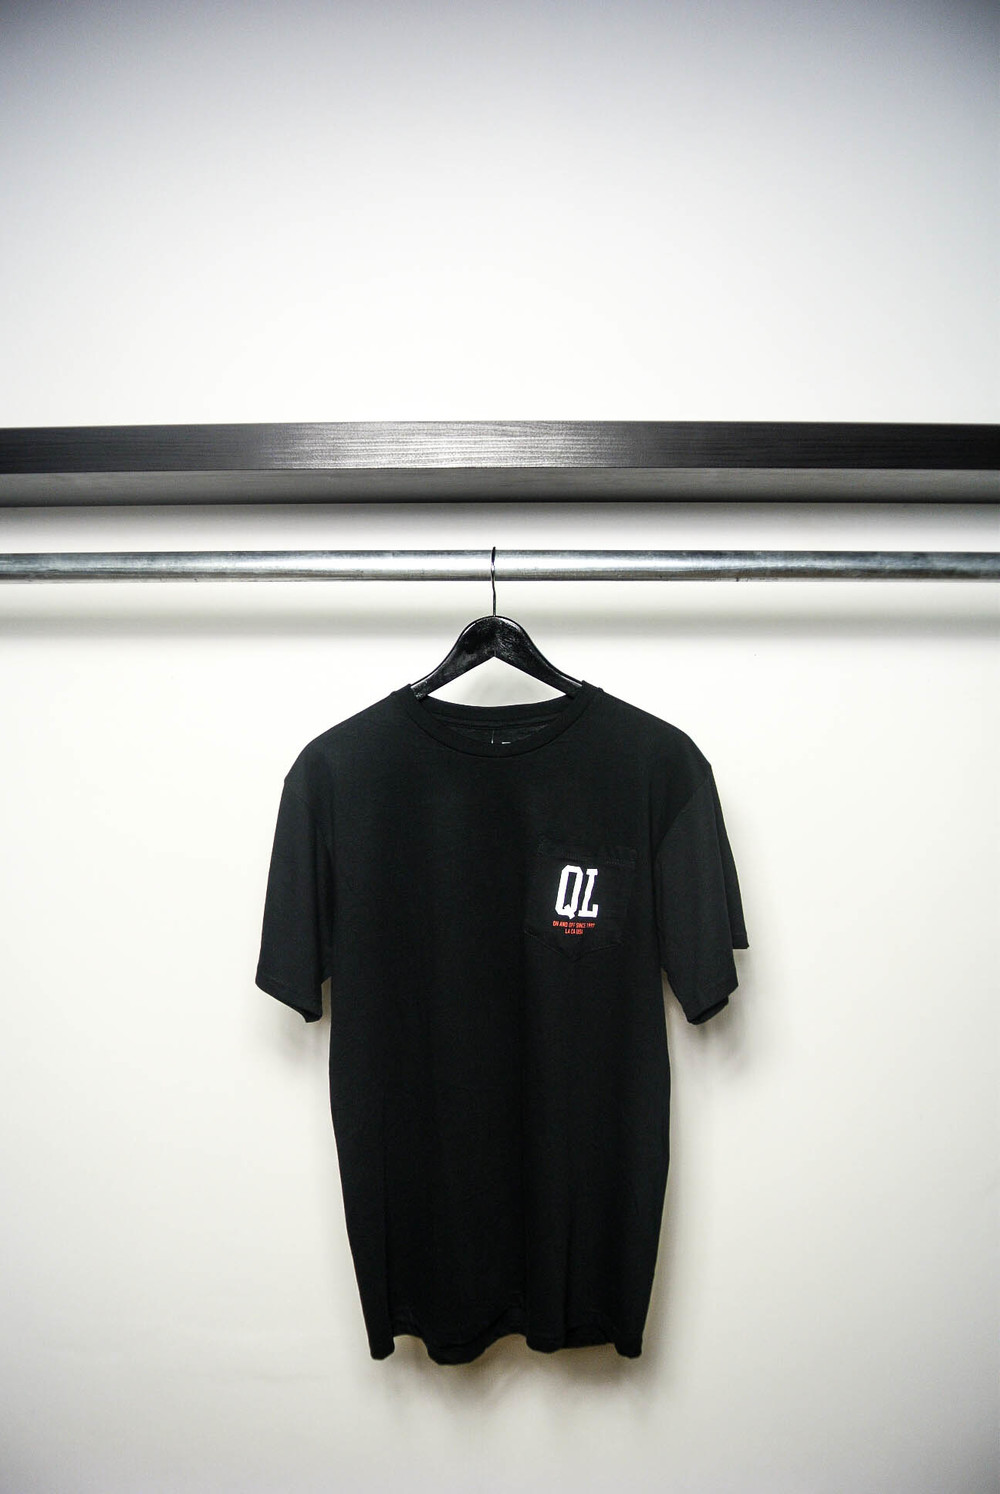 The+Quiet+Life+QL+Premium+Pocket+Tee+Black_Holy+Rail_Front